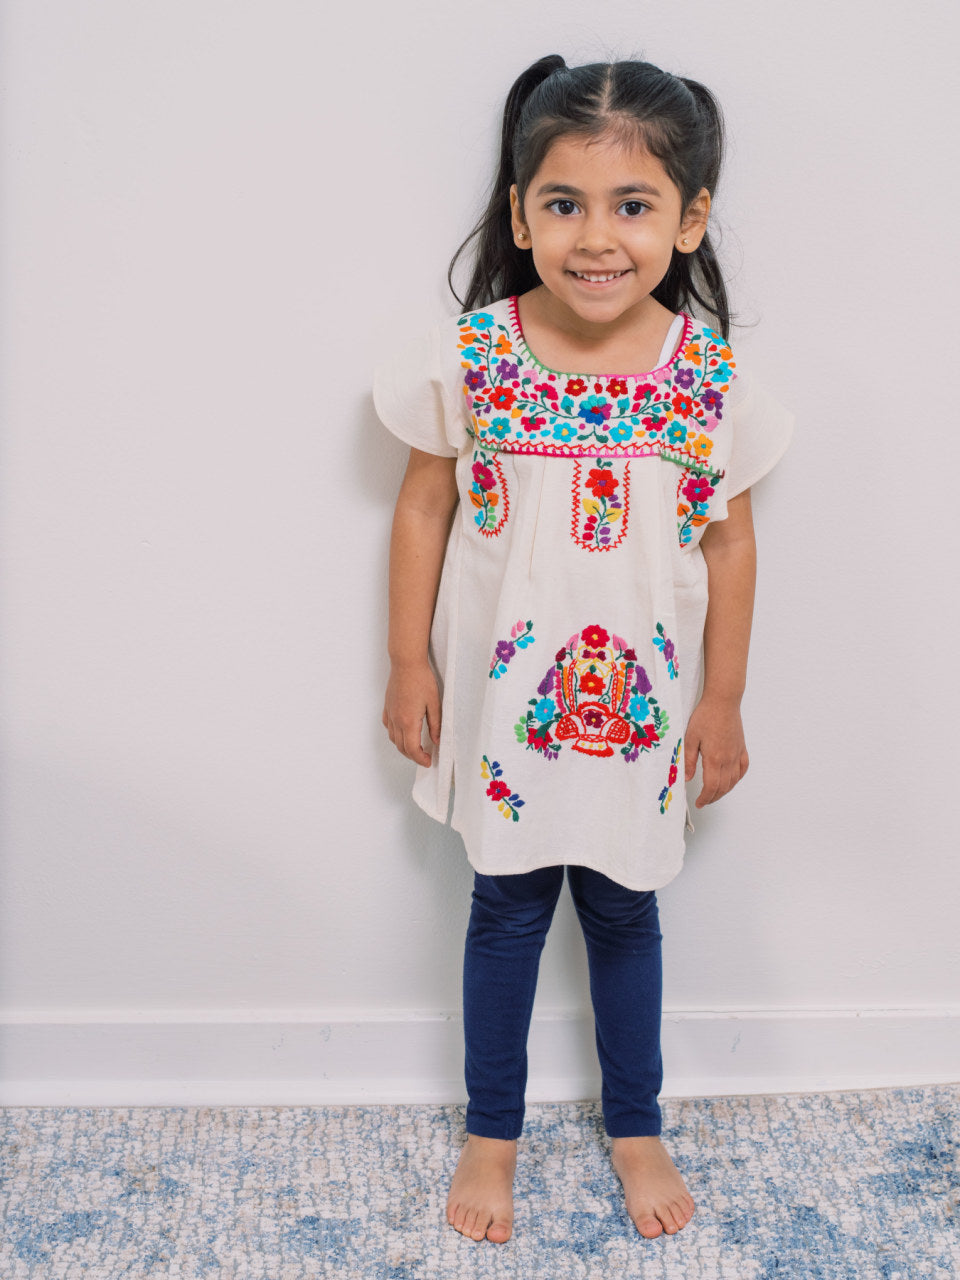 Flor de Puebla - Manta Dress - Handmade, Embroidered Mexican Little Girl Dress - Chokolita